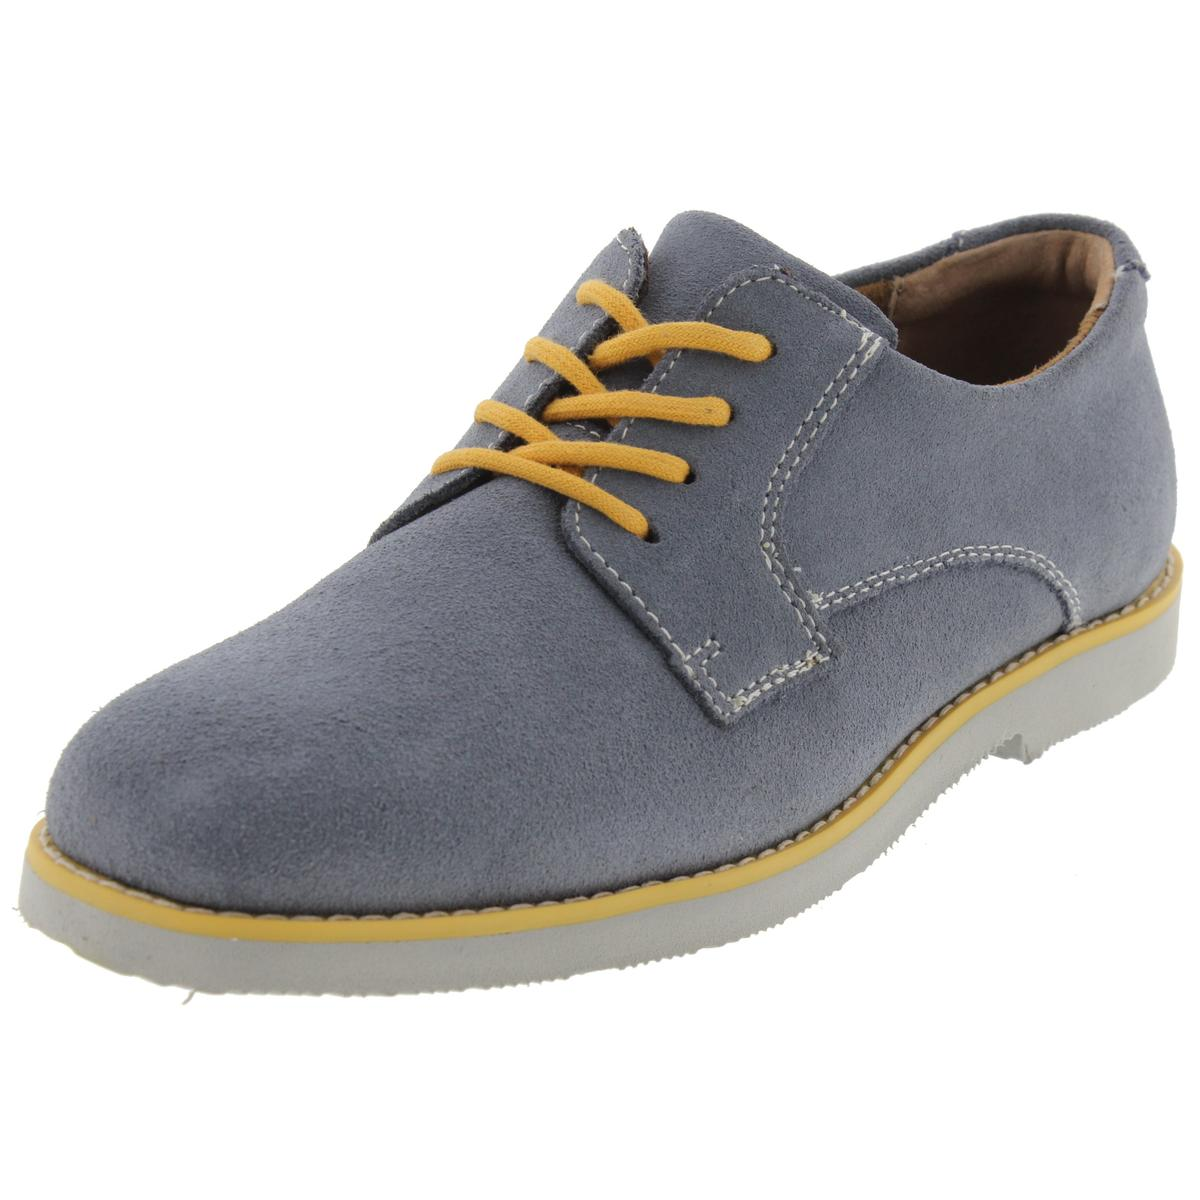 Florsheim Boys Kearny JR Suede Oxfords by Florsheim